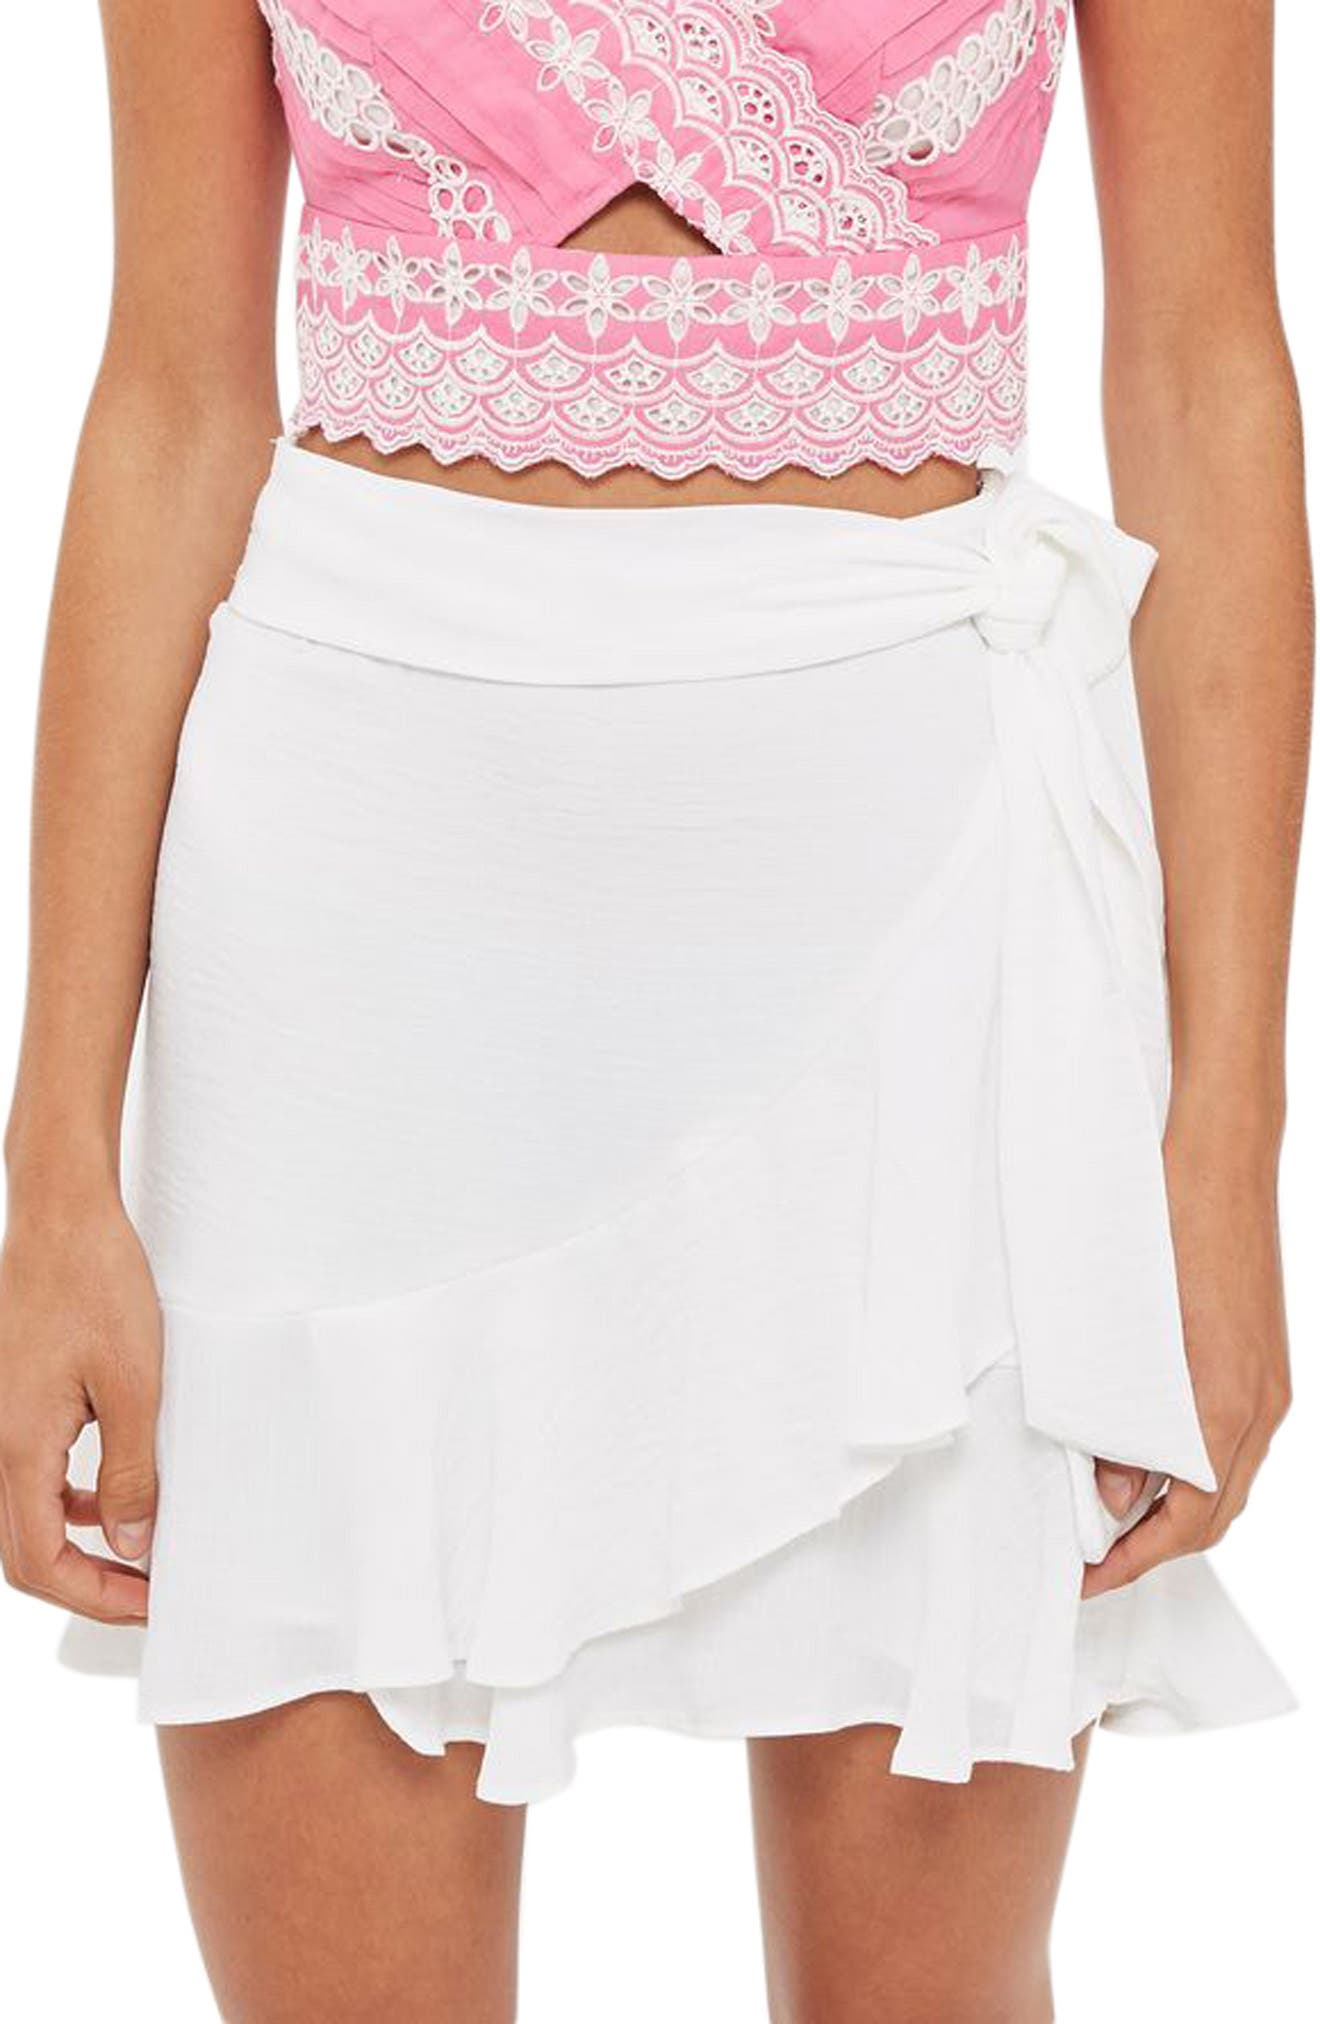 Topshop Ruffle Tie Mini Skirt